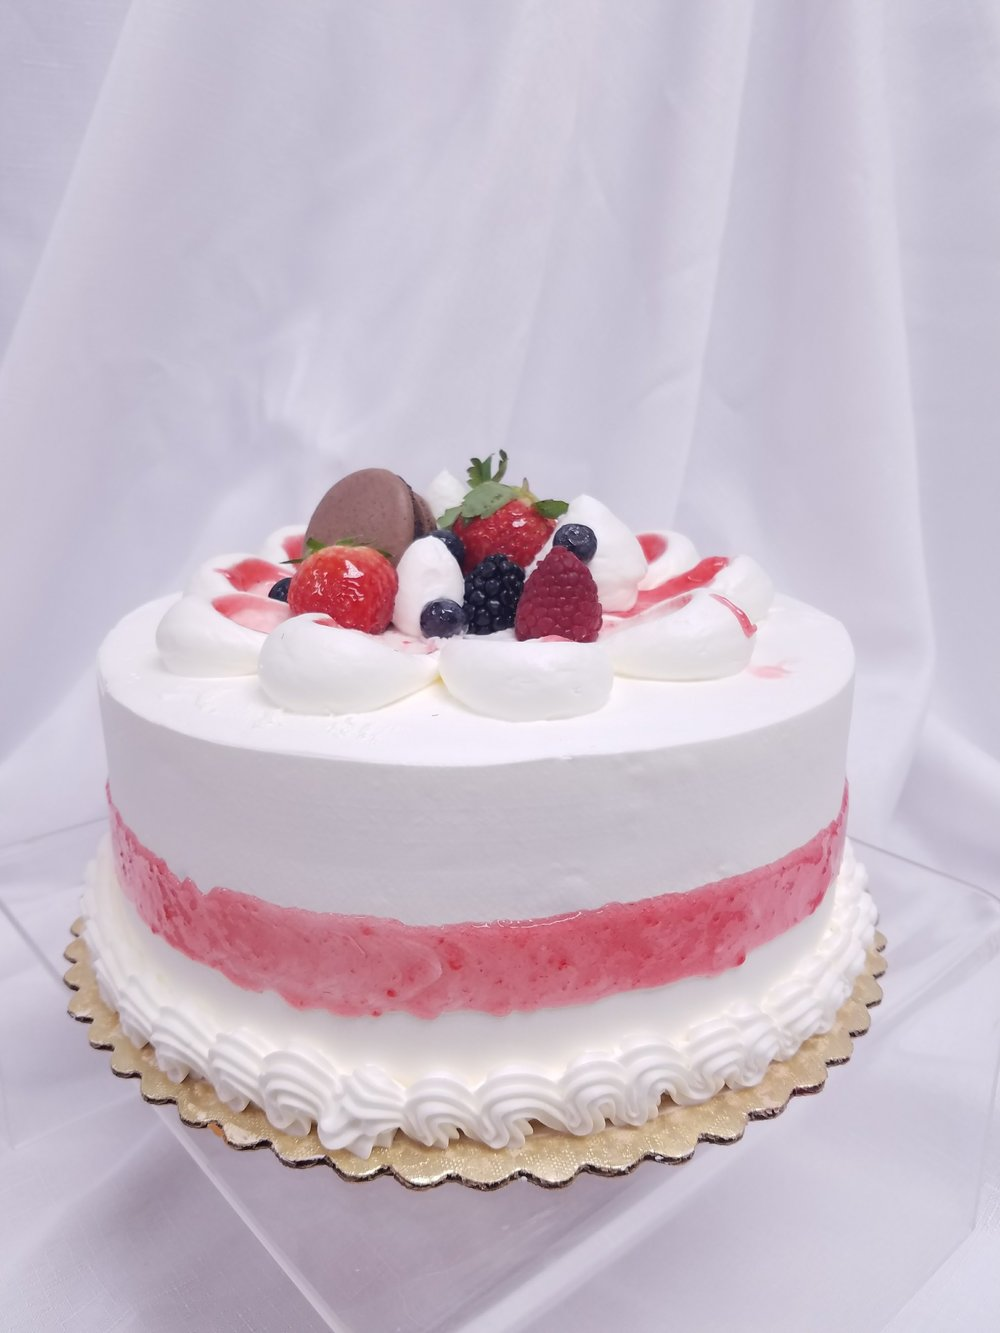 Traditional Strawberry Shortcake A crowd favorite. Beautifully soft lemon sponge cake layered with our famous Strawberry Mascarpone cream and fresh strawberries for a deliciously light dessert that will have everyone wanting seconds.